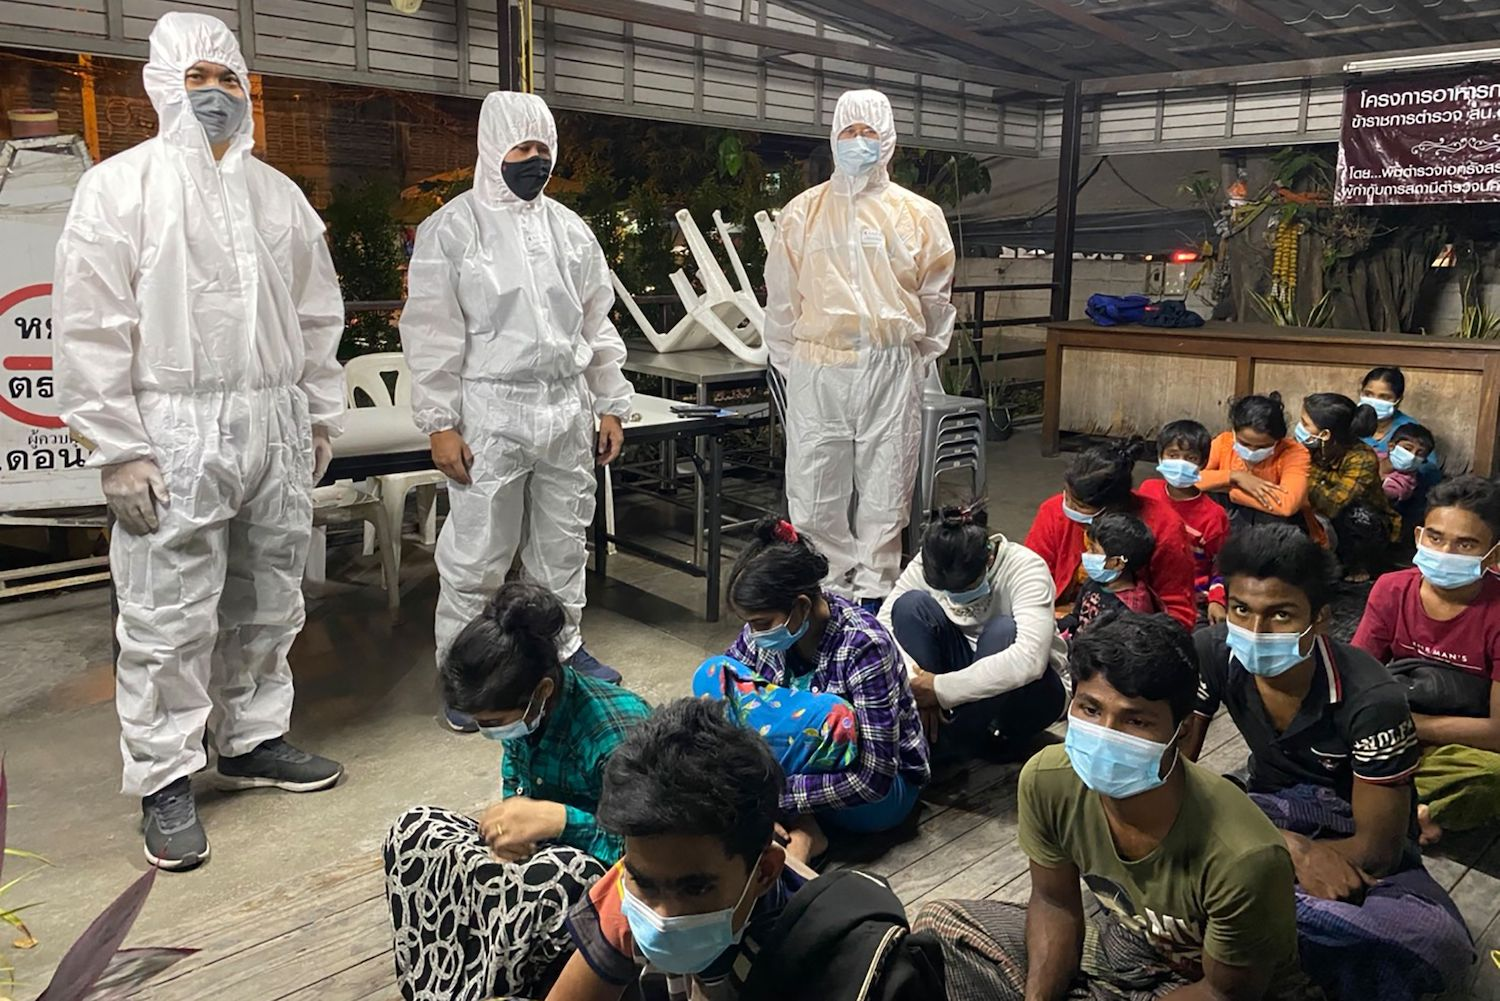 A picture taken by the Immigration Bureau on Jan 3 and released on Saturday shows immigration officers watching over a group of Rohingya migrants who were arrested in Don Muang district of Bangkok after being smuggled overland from Rakhine state in Myanmar. (Immigration Bureau handout via AFP)